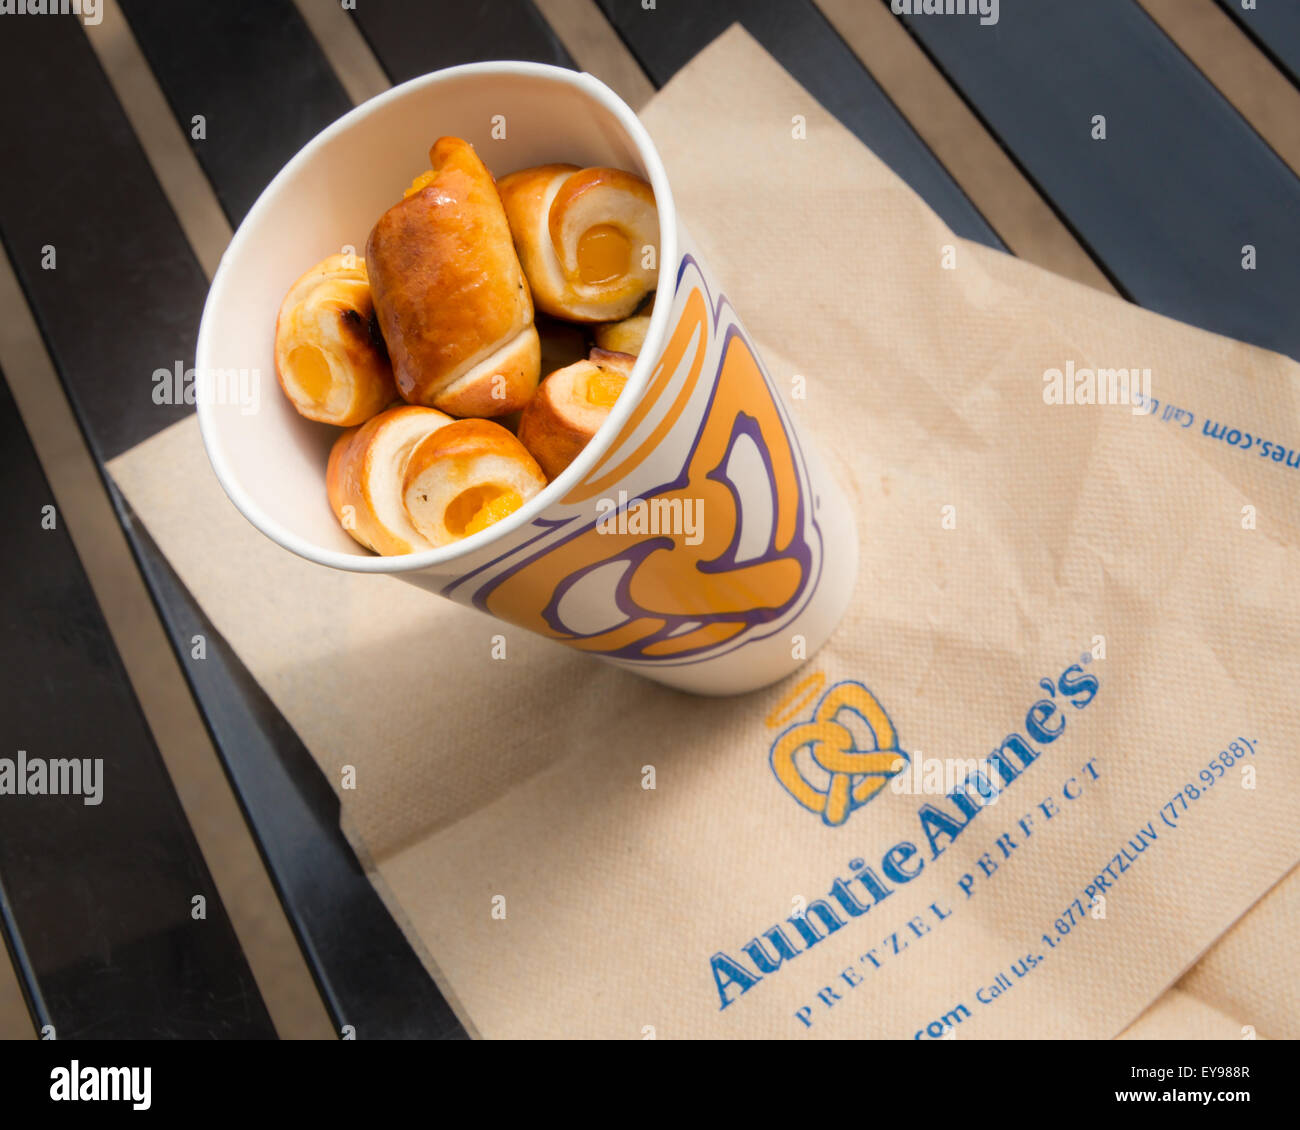 Image of a cup of cheese filled Auntie Anne's pretzel nuggets on brand napkins on mall food court bench. - Stock Image